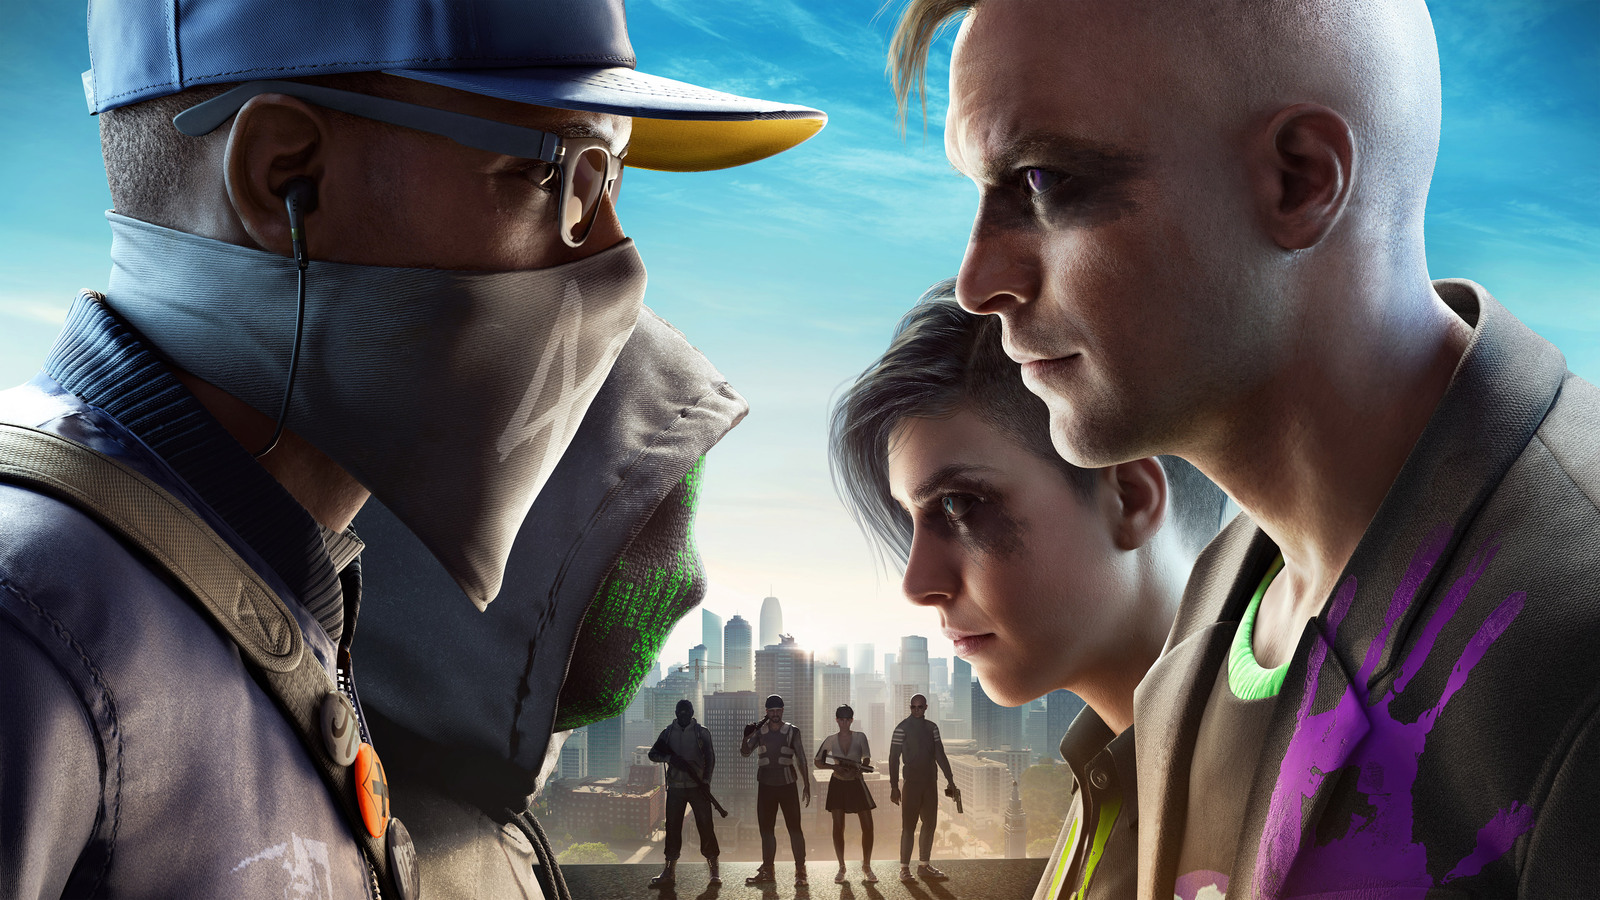 1600x900 Watch Dogs 2 No Compromise 1600x900 Resolution HD ...